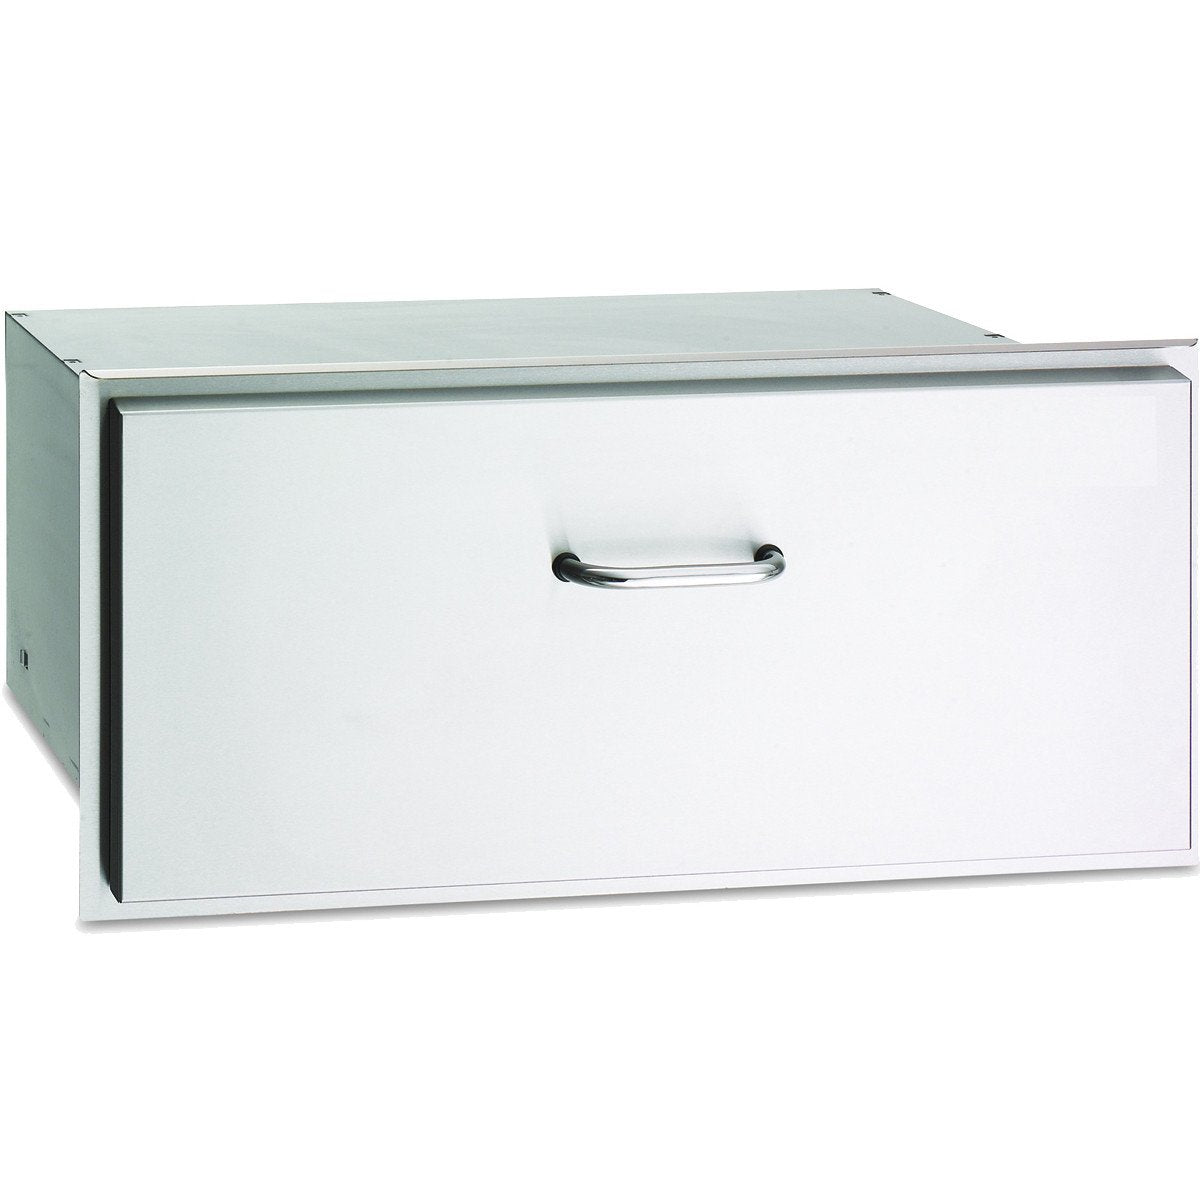 "American Outdoor Grill 30"" Stainless Steel Masonry Drawer"